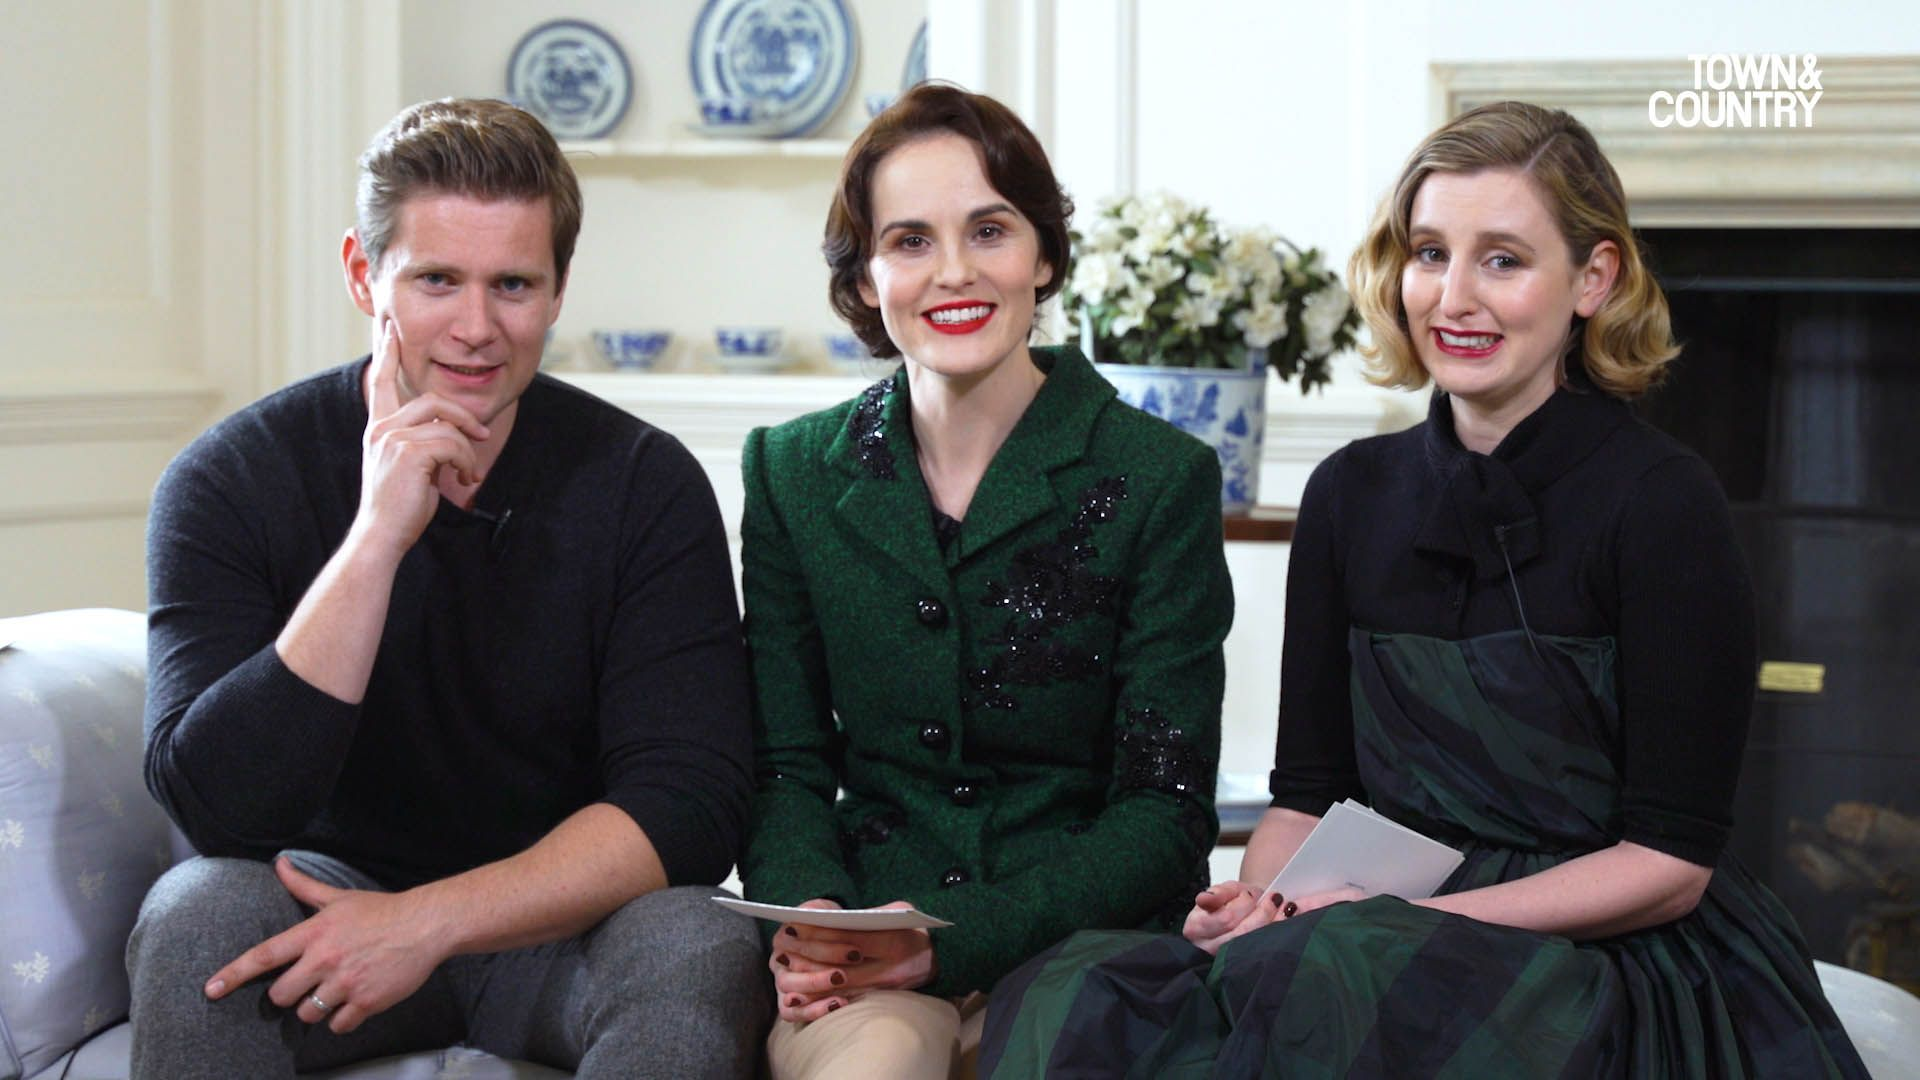 Watch the Stars of Downton Abbey Reveal the Plot of the New Movie, But in American Accents